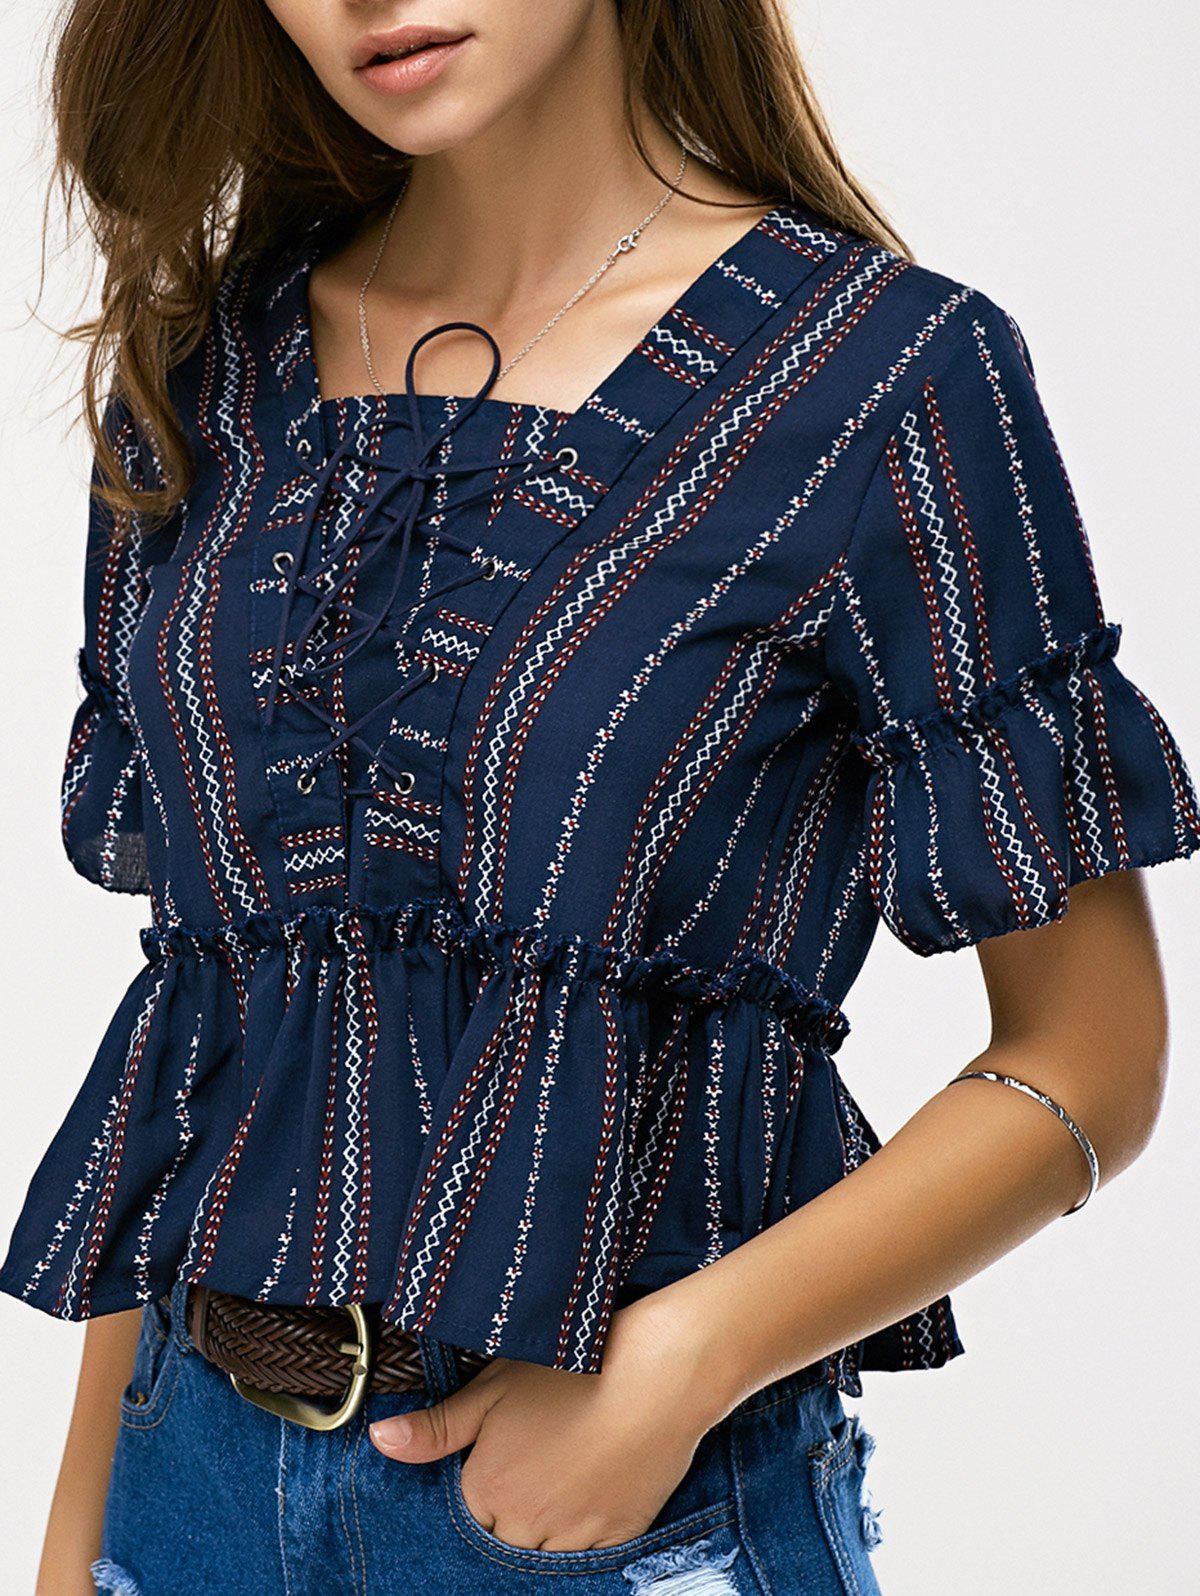 Ethnic Women's Lace-Up Ruffled Top